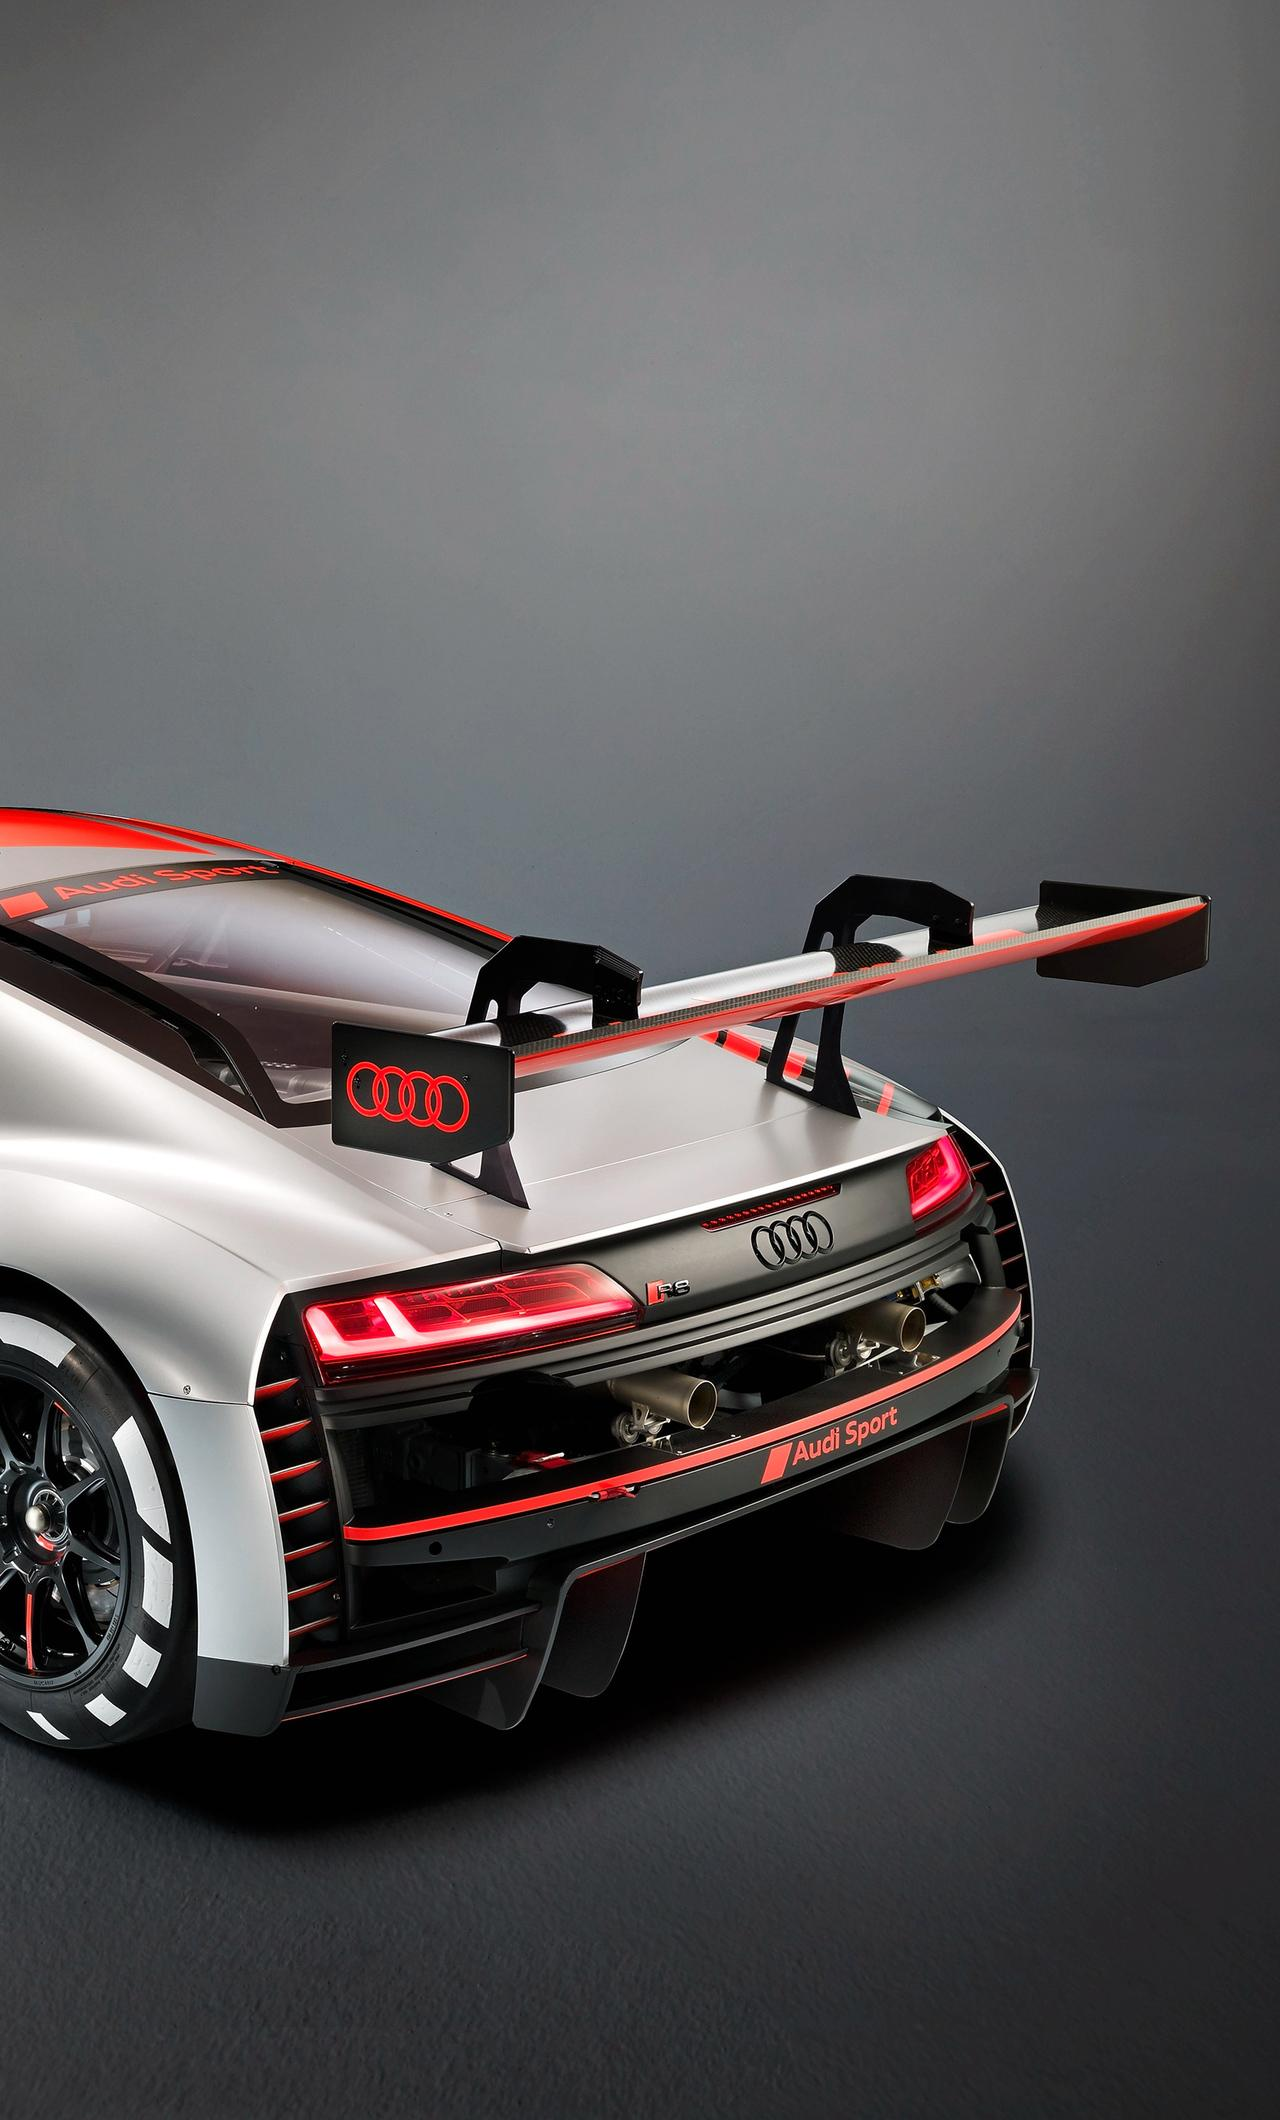 1280x2120 2019 Audi R8 LMS Rear View iPhone 6+ HD 4k Wallpapers